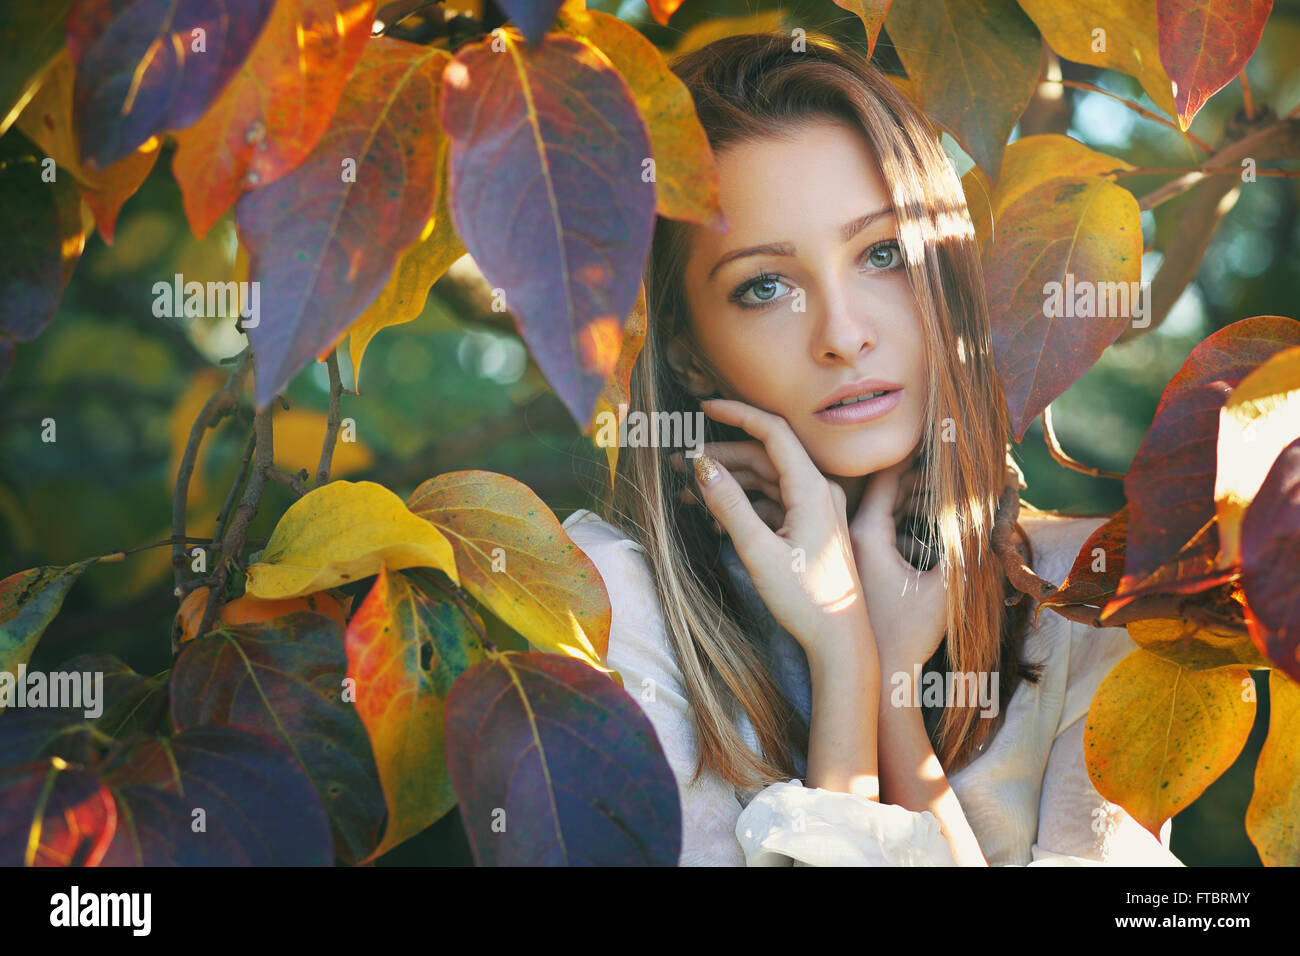 Beautiful young woman posing among colorful autumn leaves Stock Photo